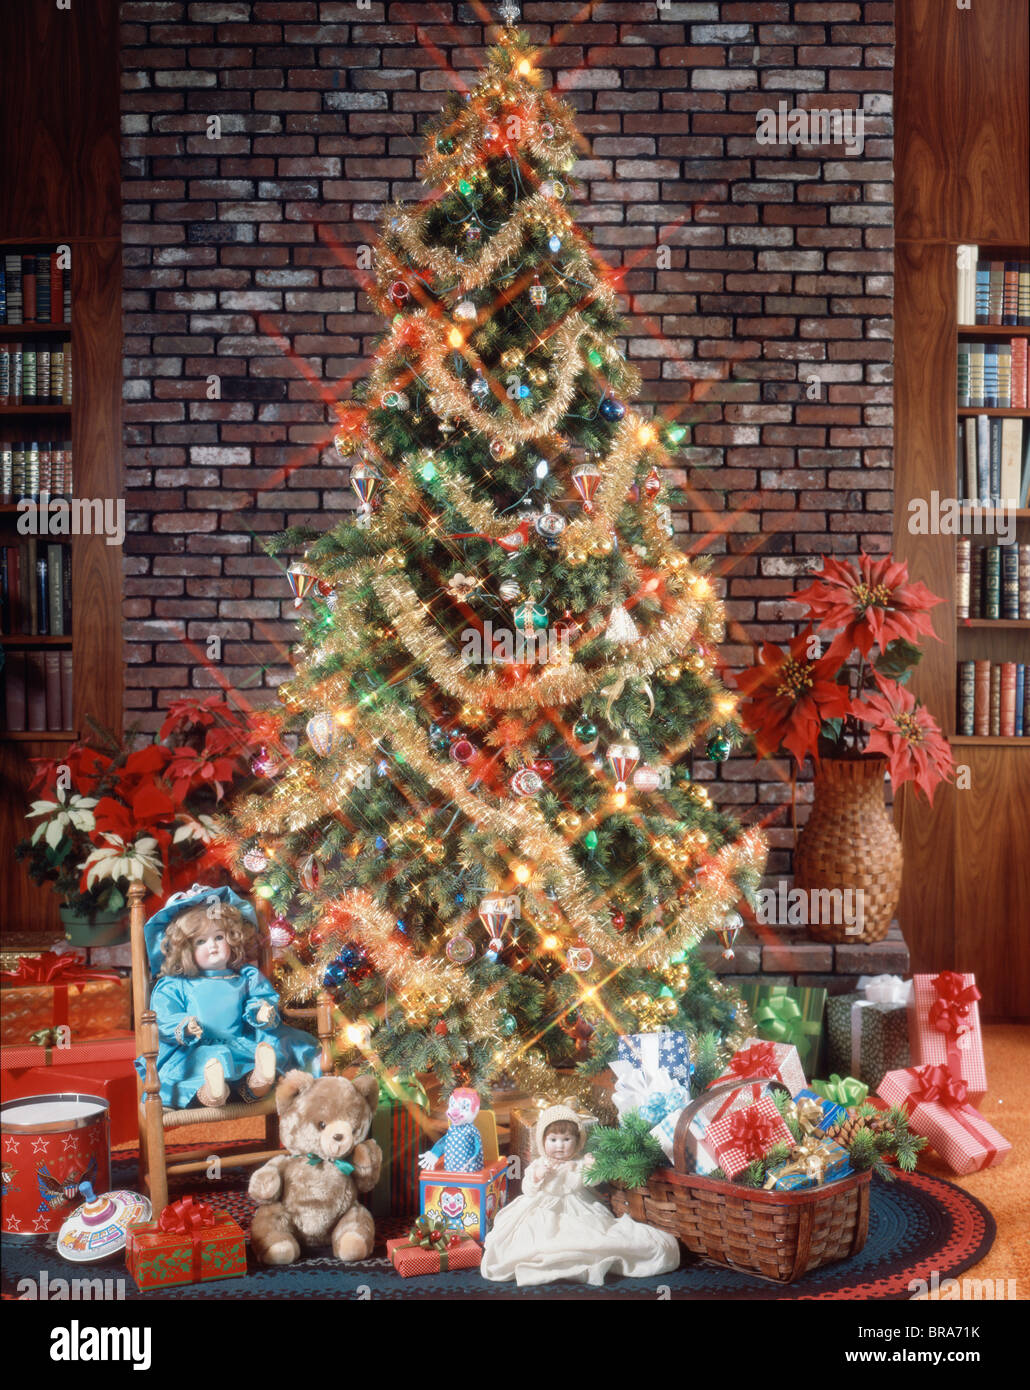 christmas tree with decorations garland lights toys and presents under tree - Under Christmas Tree Decorations